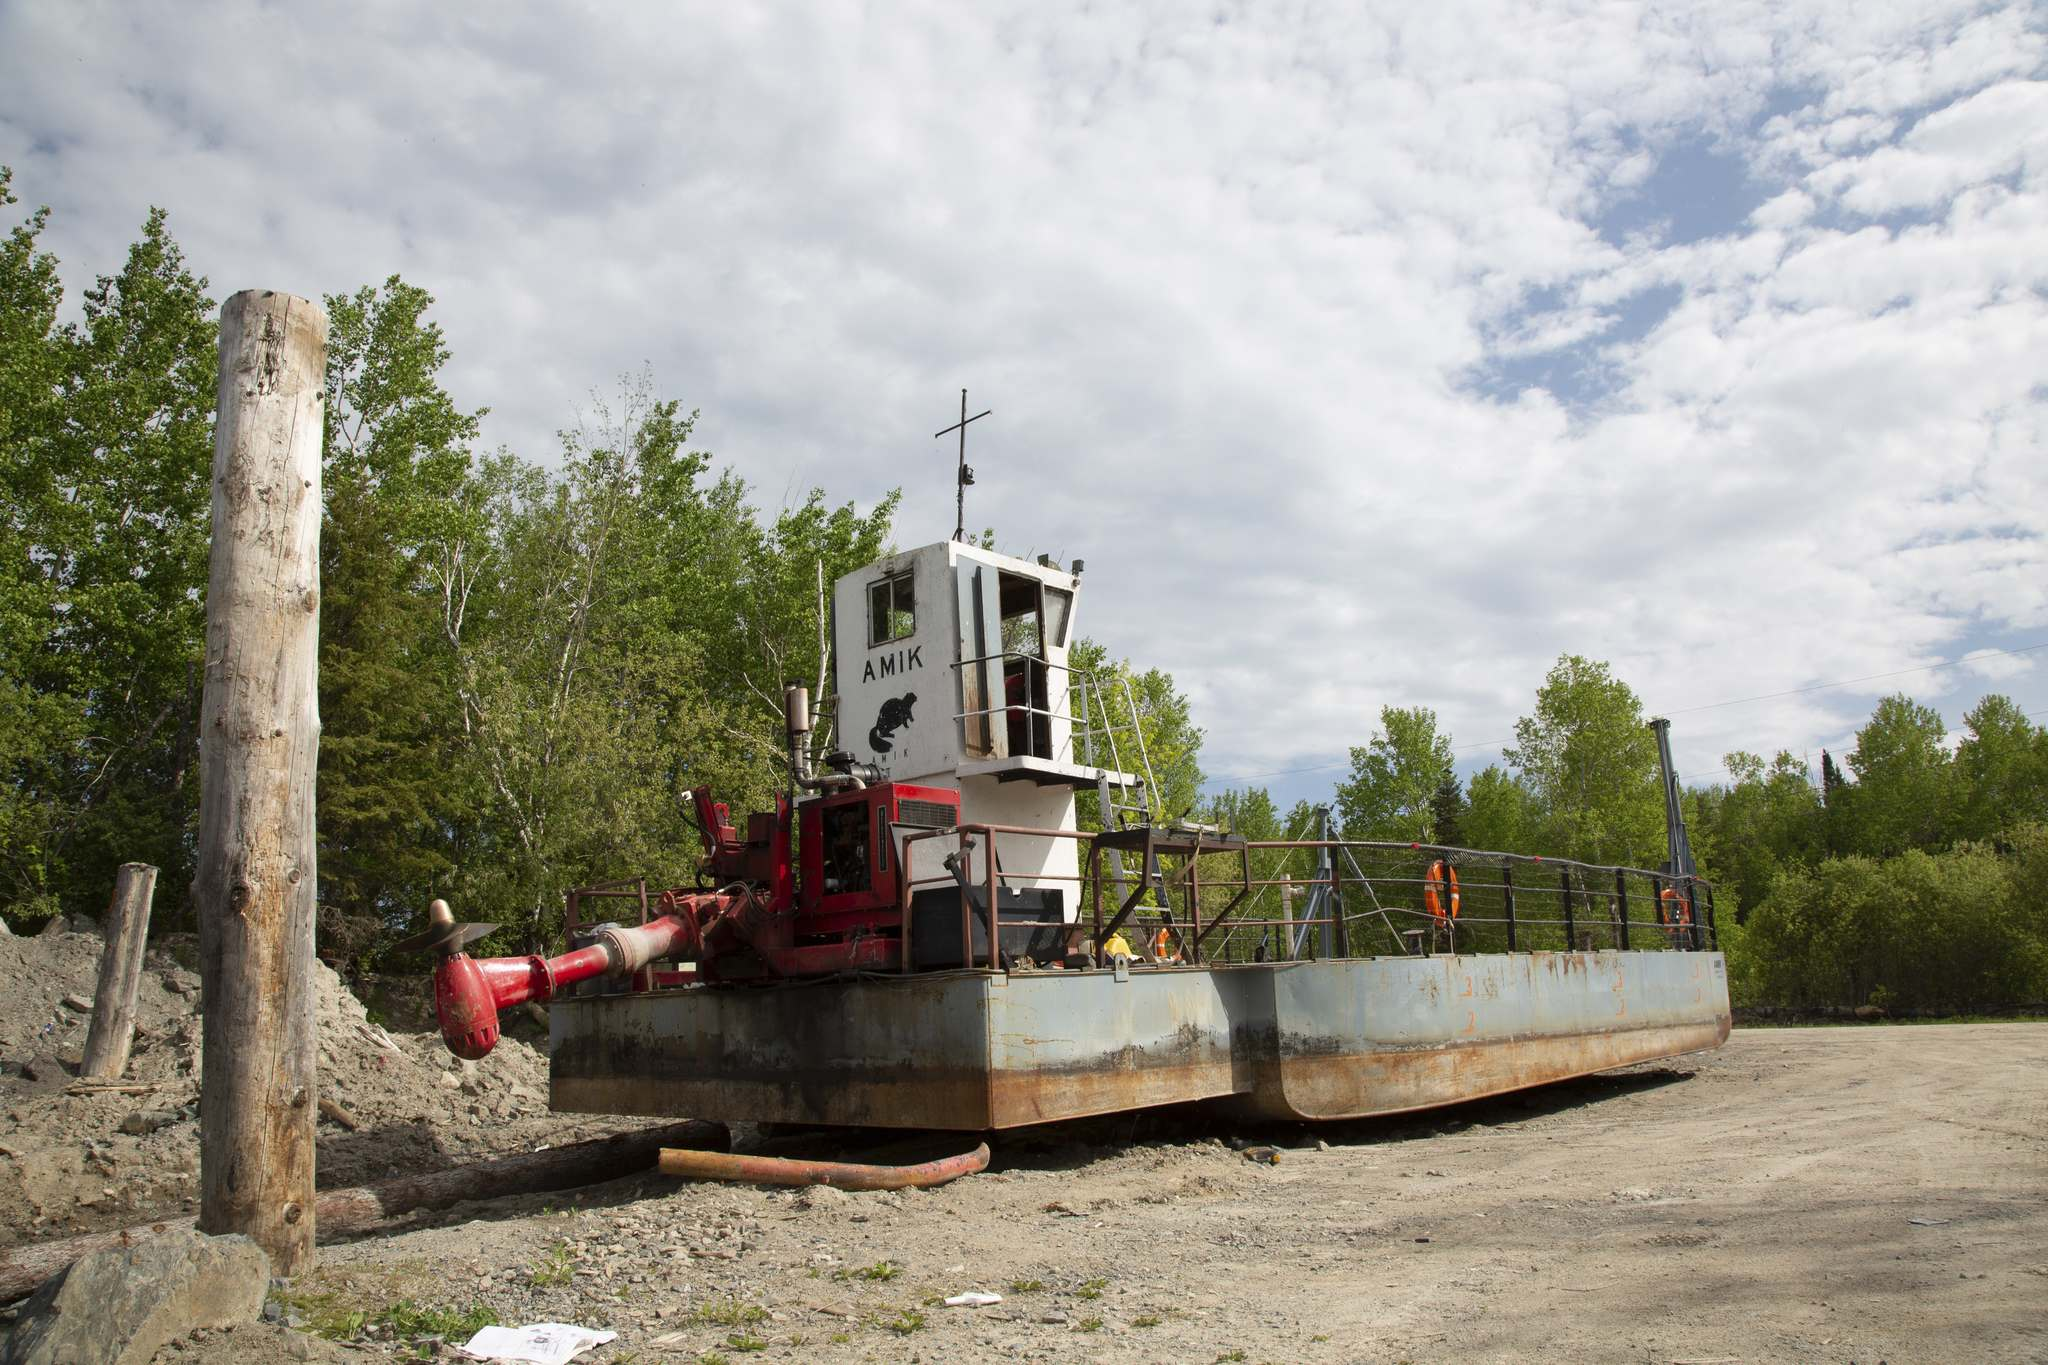 The Amik, the ferry residents used to rely on to cross the water to get to the Trans-Canada Highway.</p>